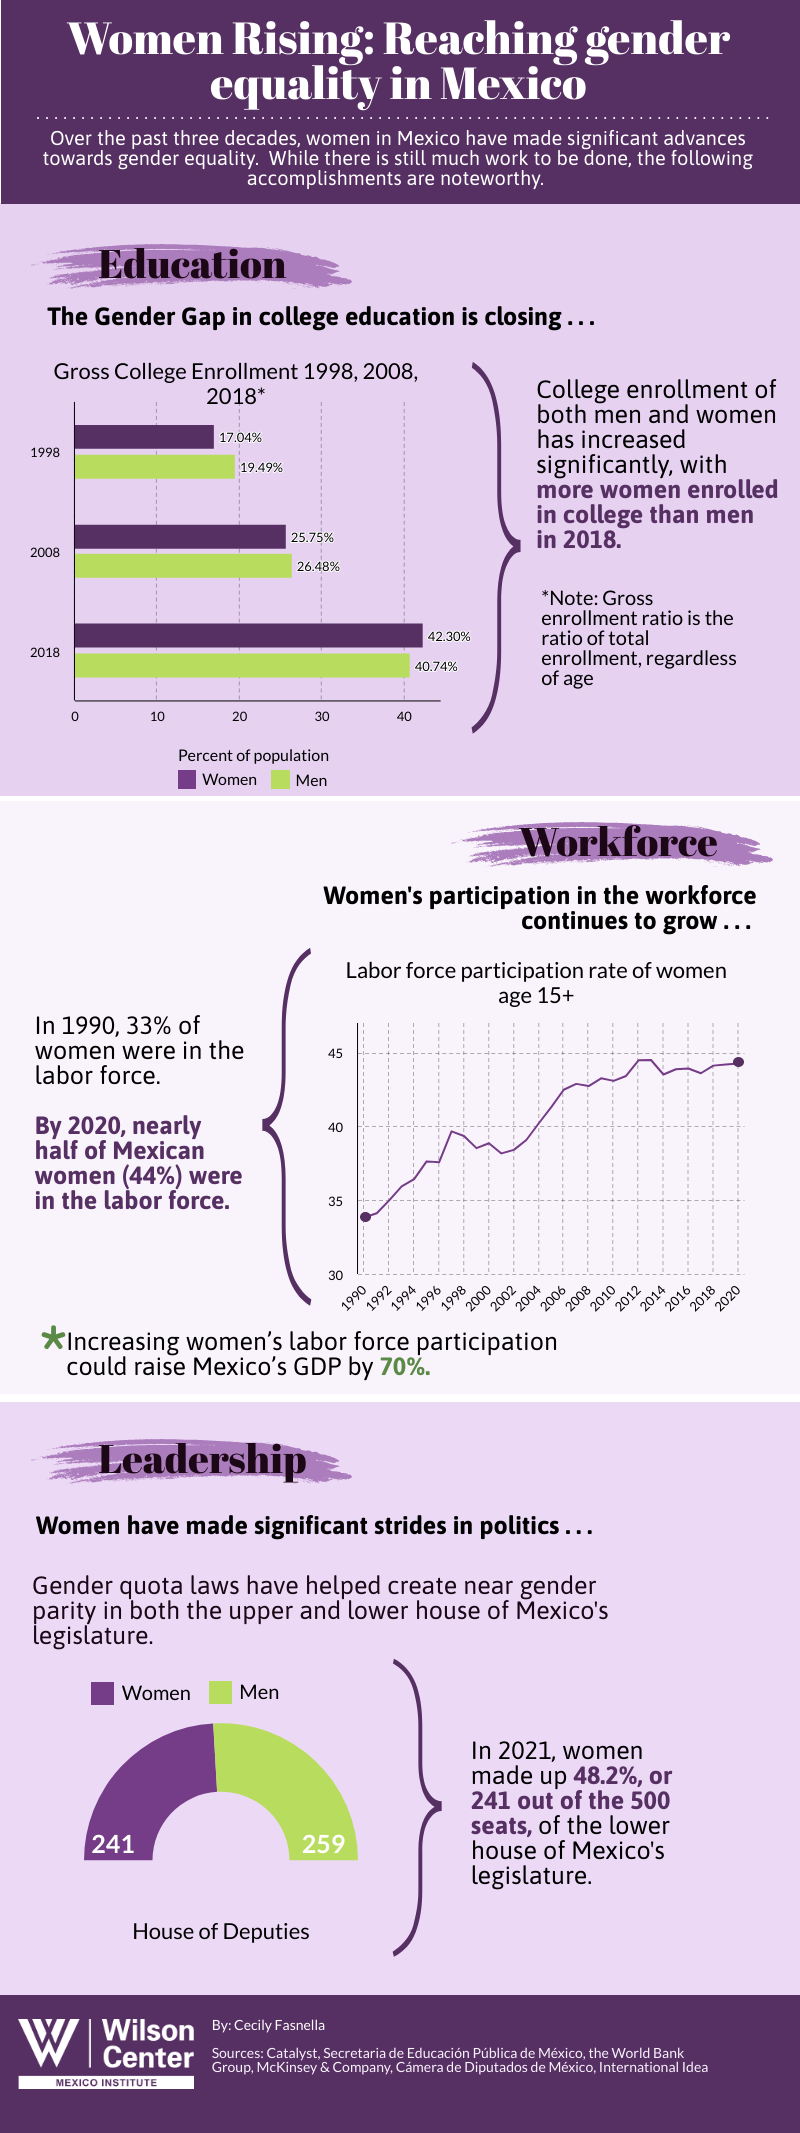 Wilson Center Infographic | Women rising: reaching gender equality in Mexico